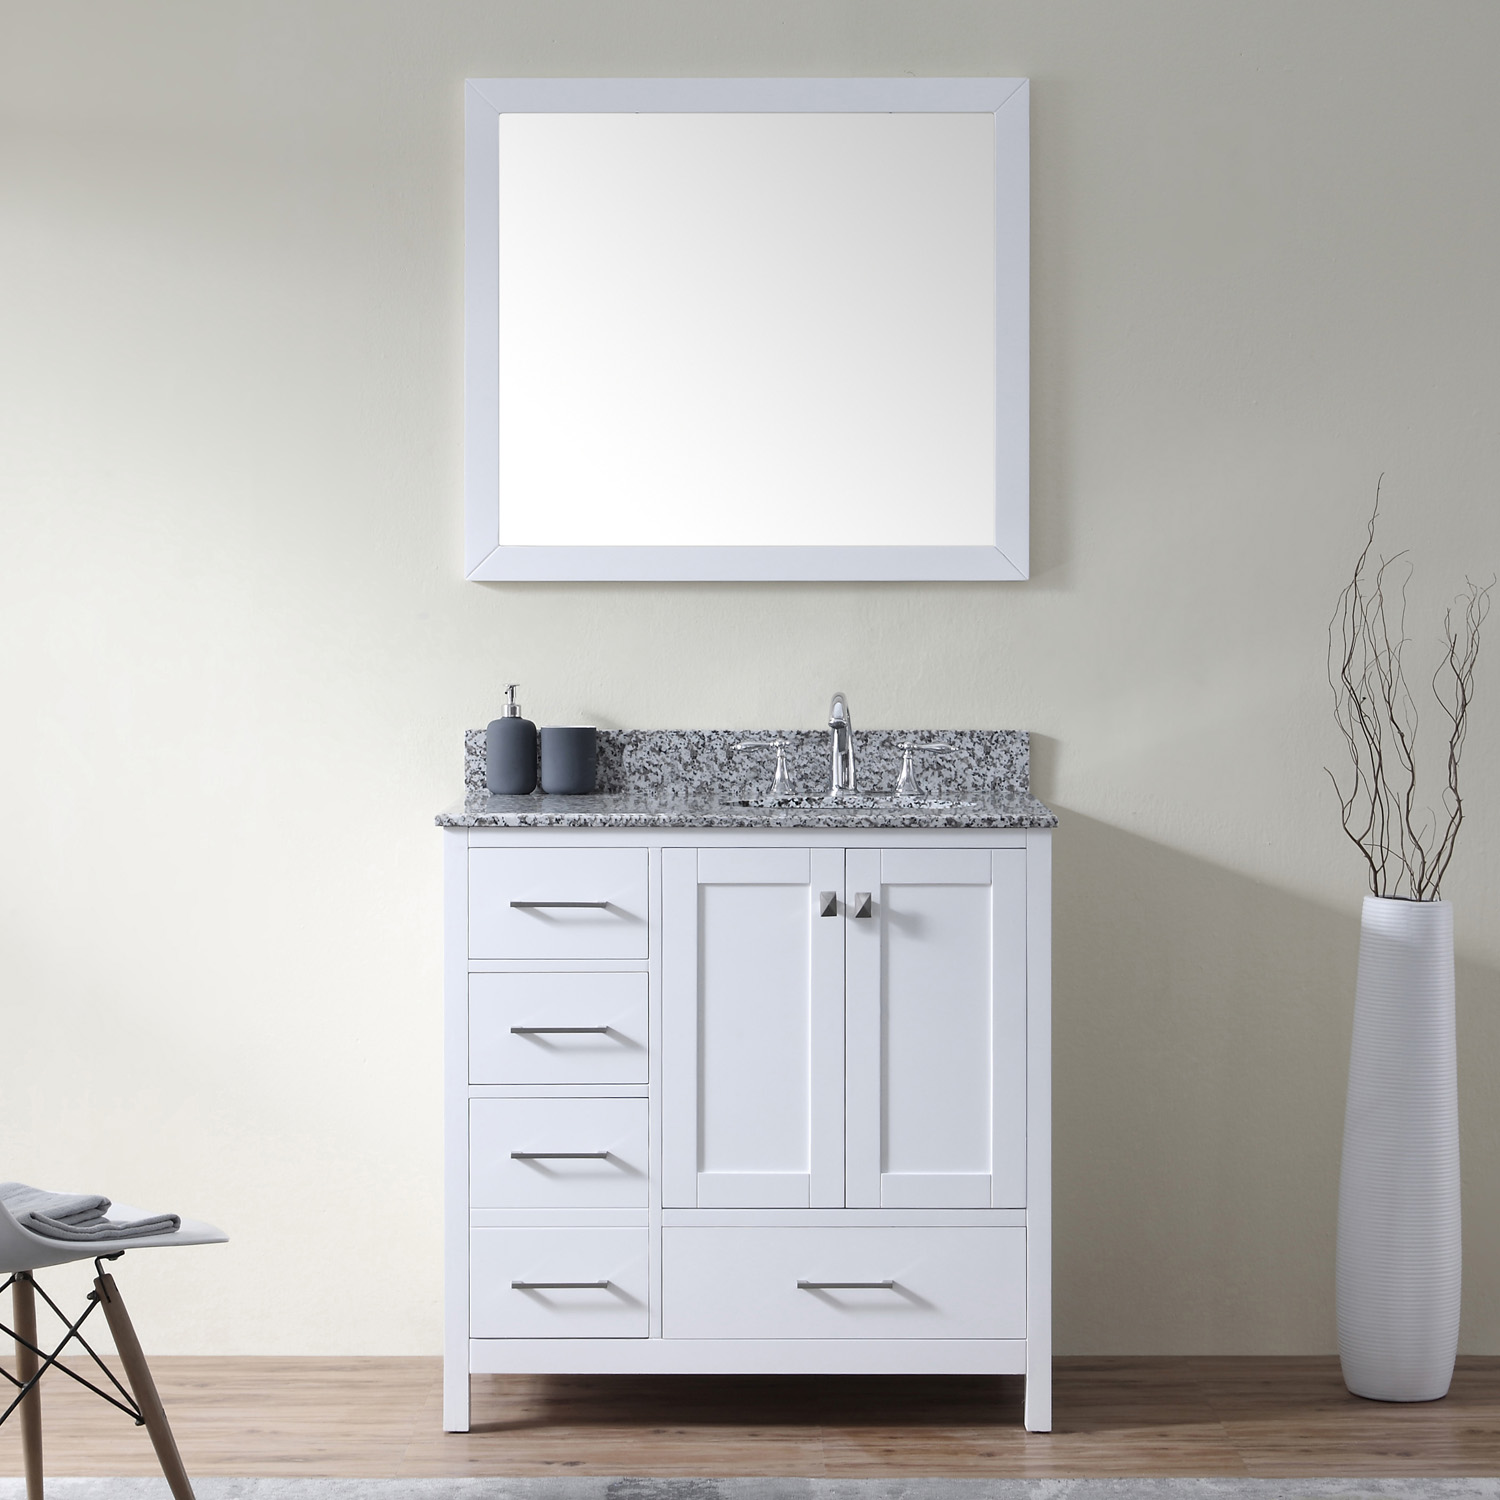 "Caroline Madison 36"" Vanity in White by Virtu USA - gs-28036l-awro-wh"